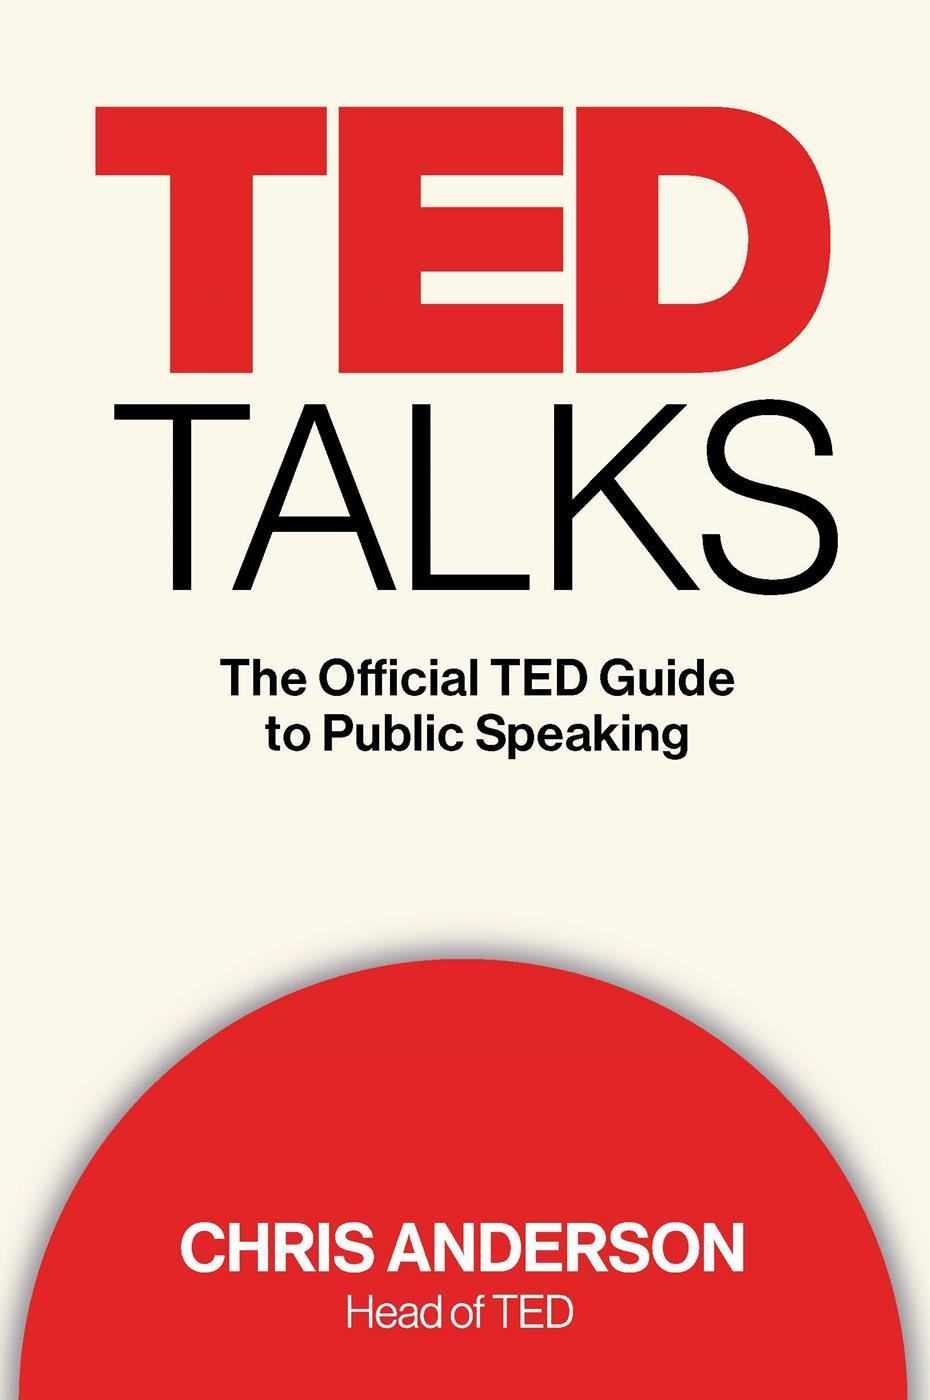 TED Talks: The Official TED Guide to Public Speaking - Chris Anderson - quotes, rating, reviews, where to buy